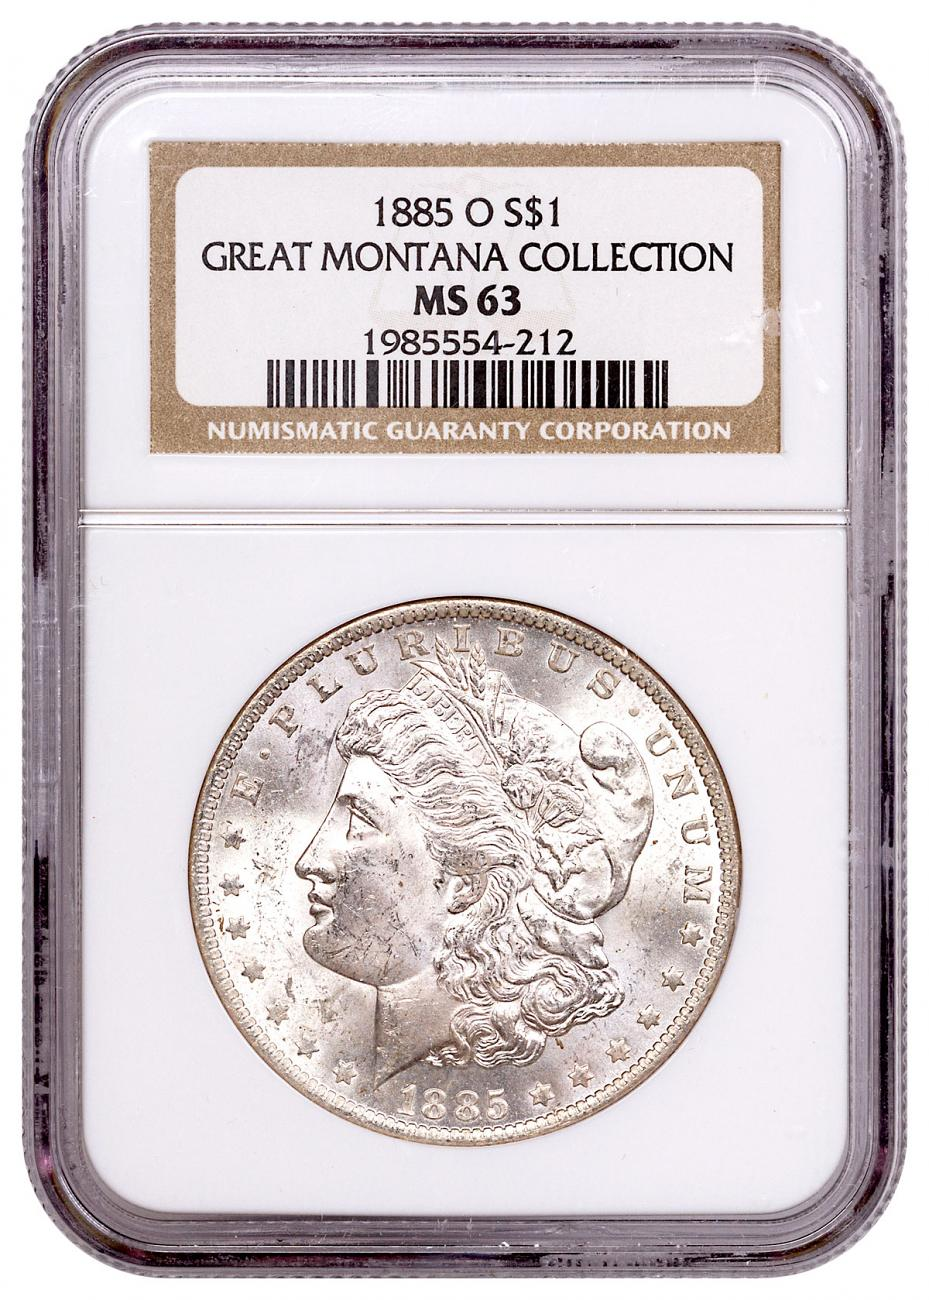 1885-O Silver Morgan Dollar From the Great Montana Collection NGC MS63 Toned CPCR 4212